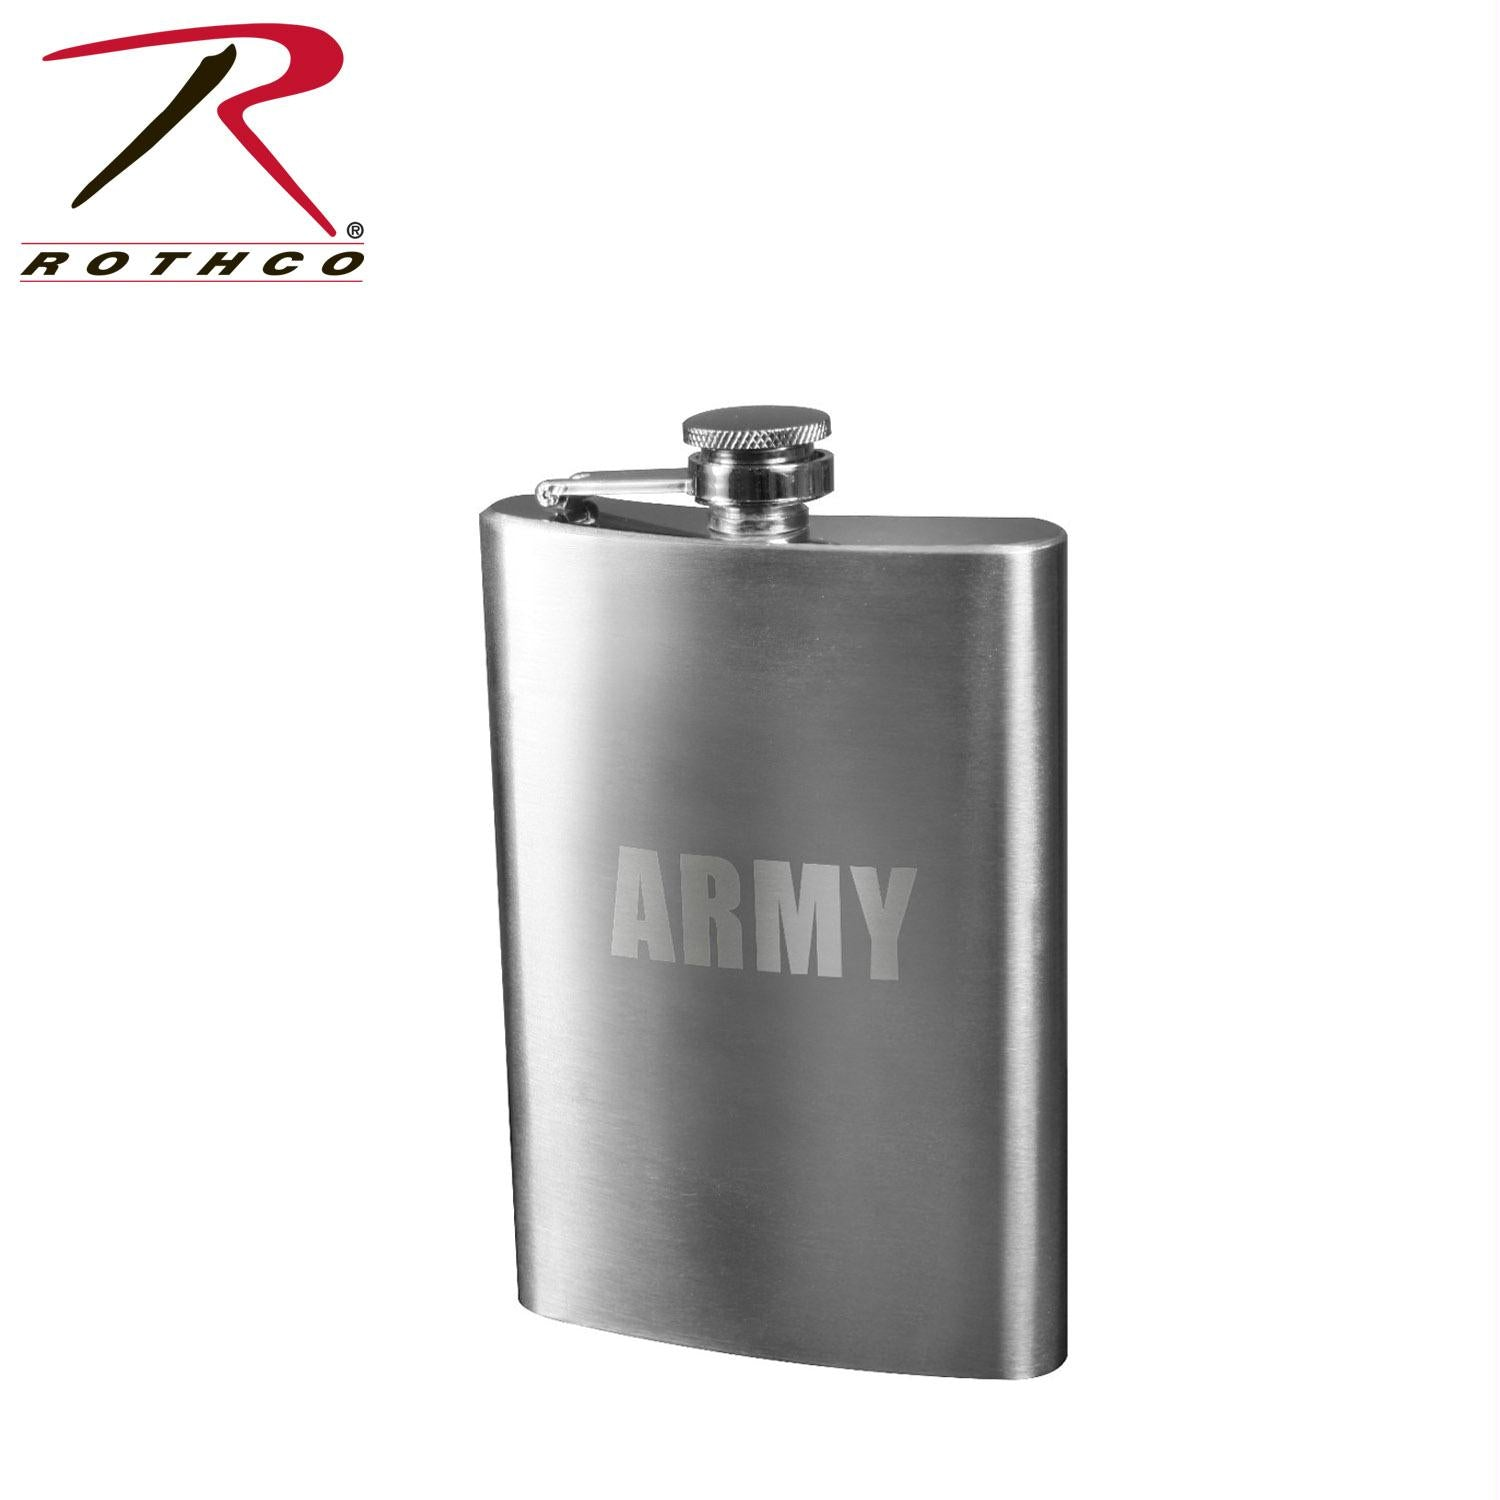 Rothco Engraved Stainless Steel Flasks - Army